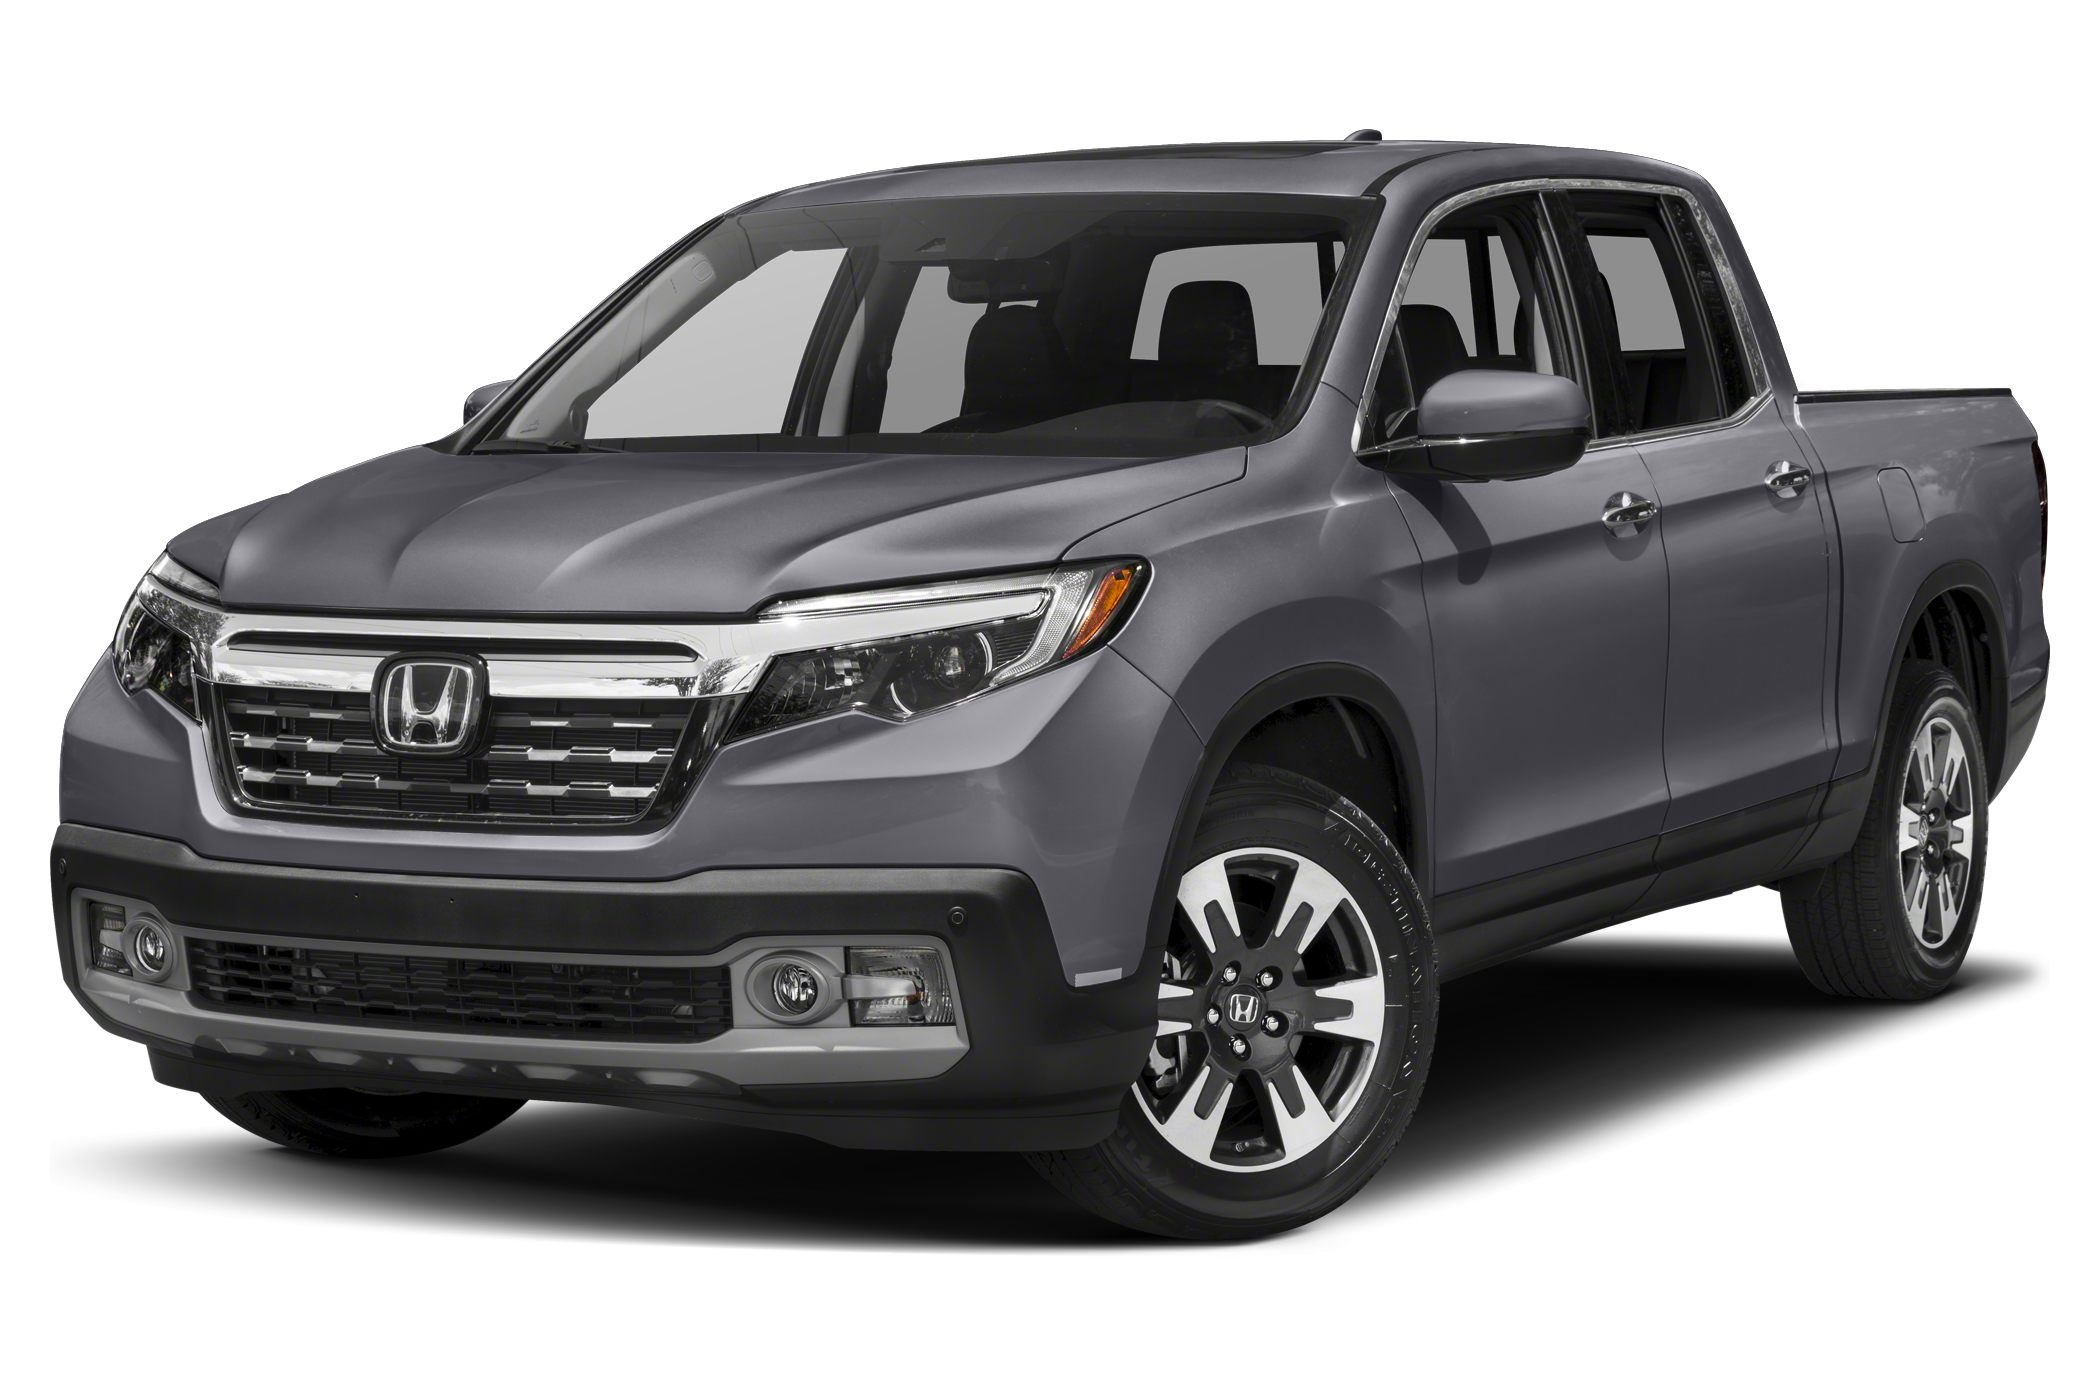 2017 Honda Ridgeline RTL Your mileage will vary depending on driving conditions how you drive and